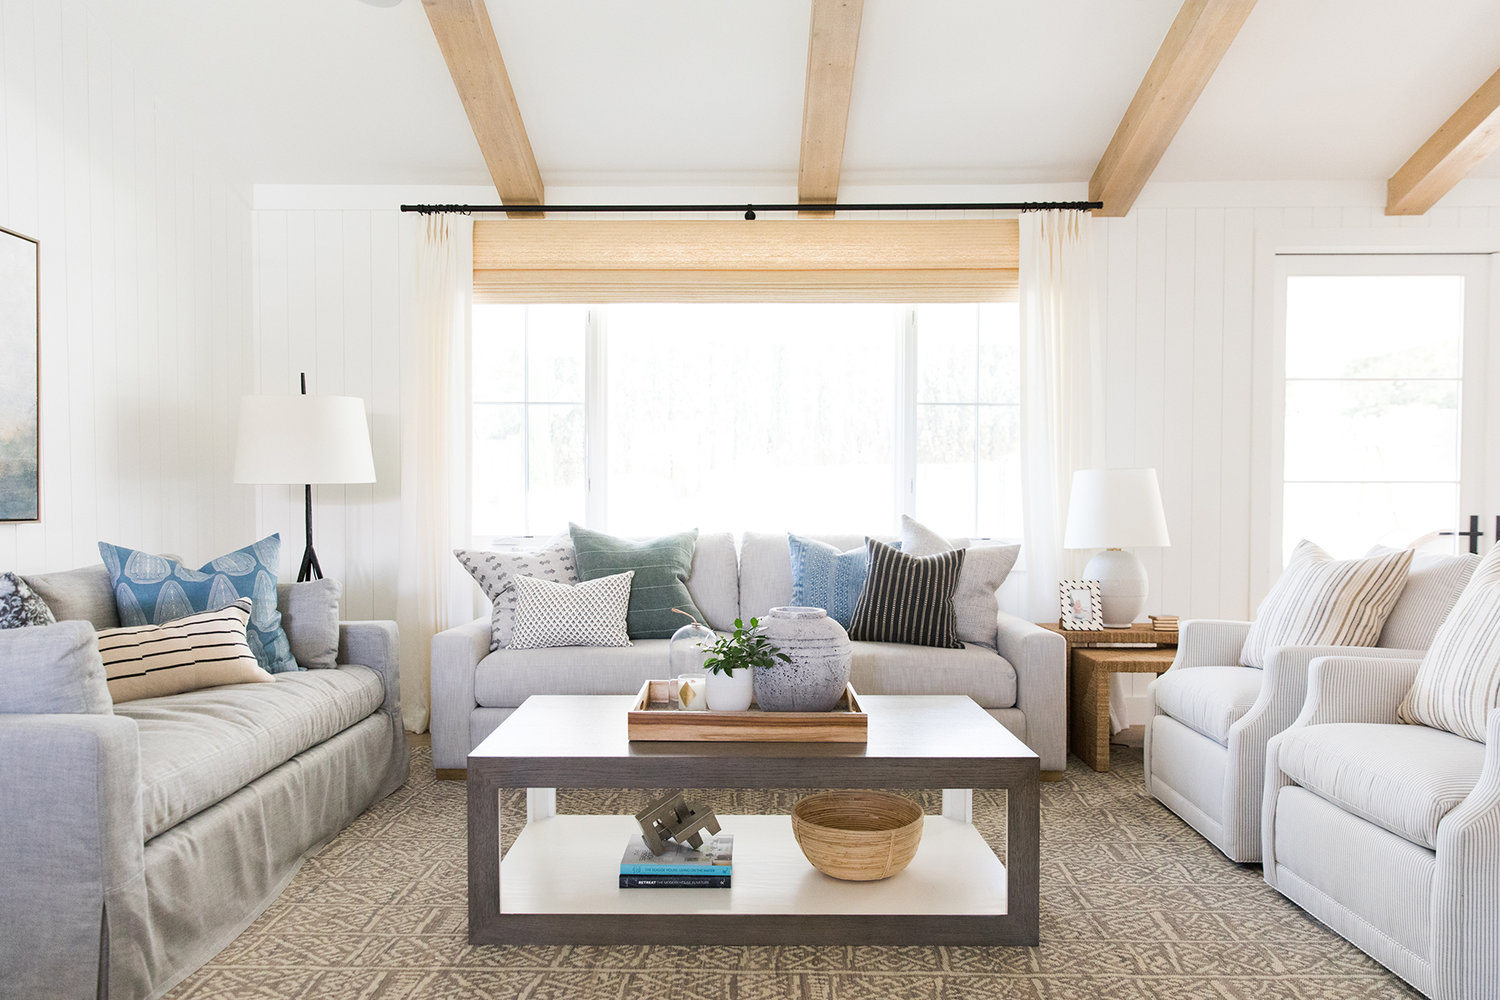 Moody+coastal+living+room+with+modern+art+and+exposed+beams.jpg